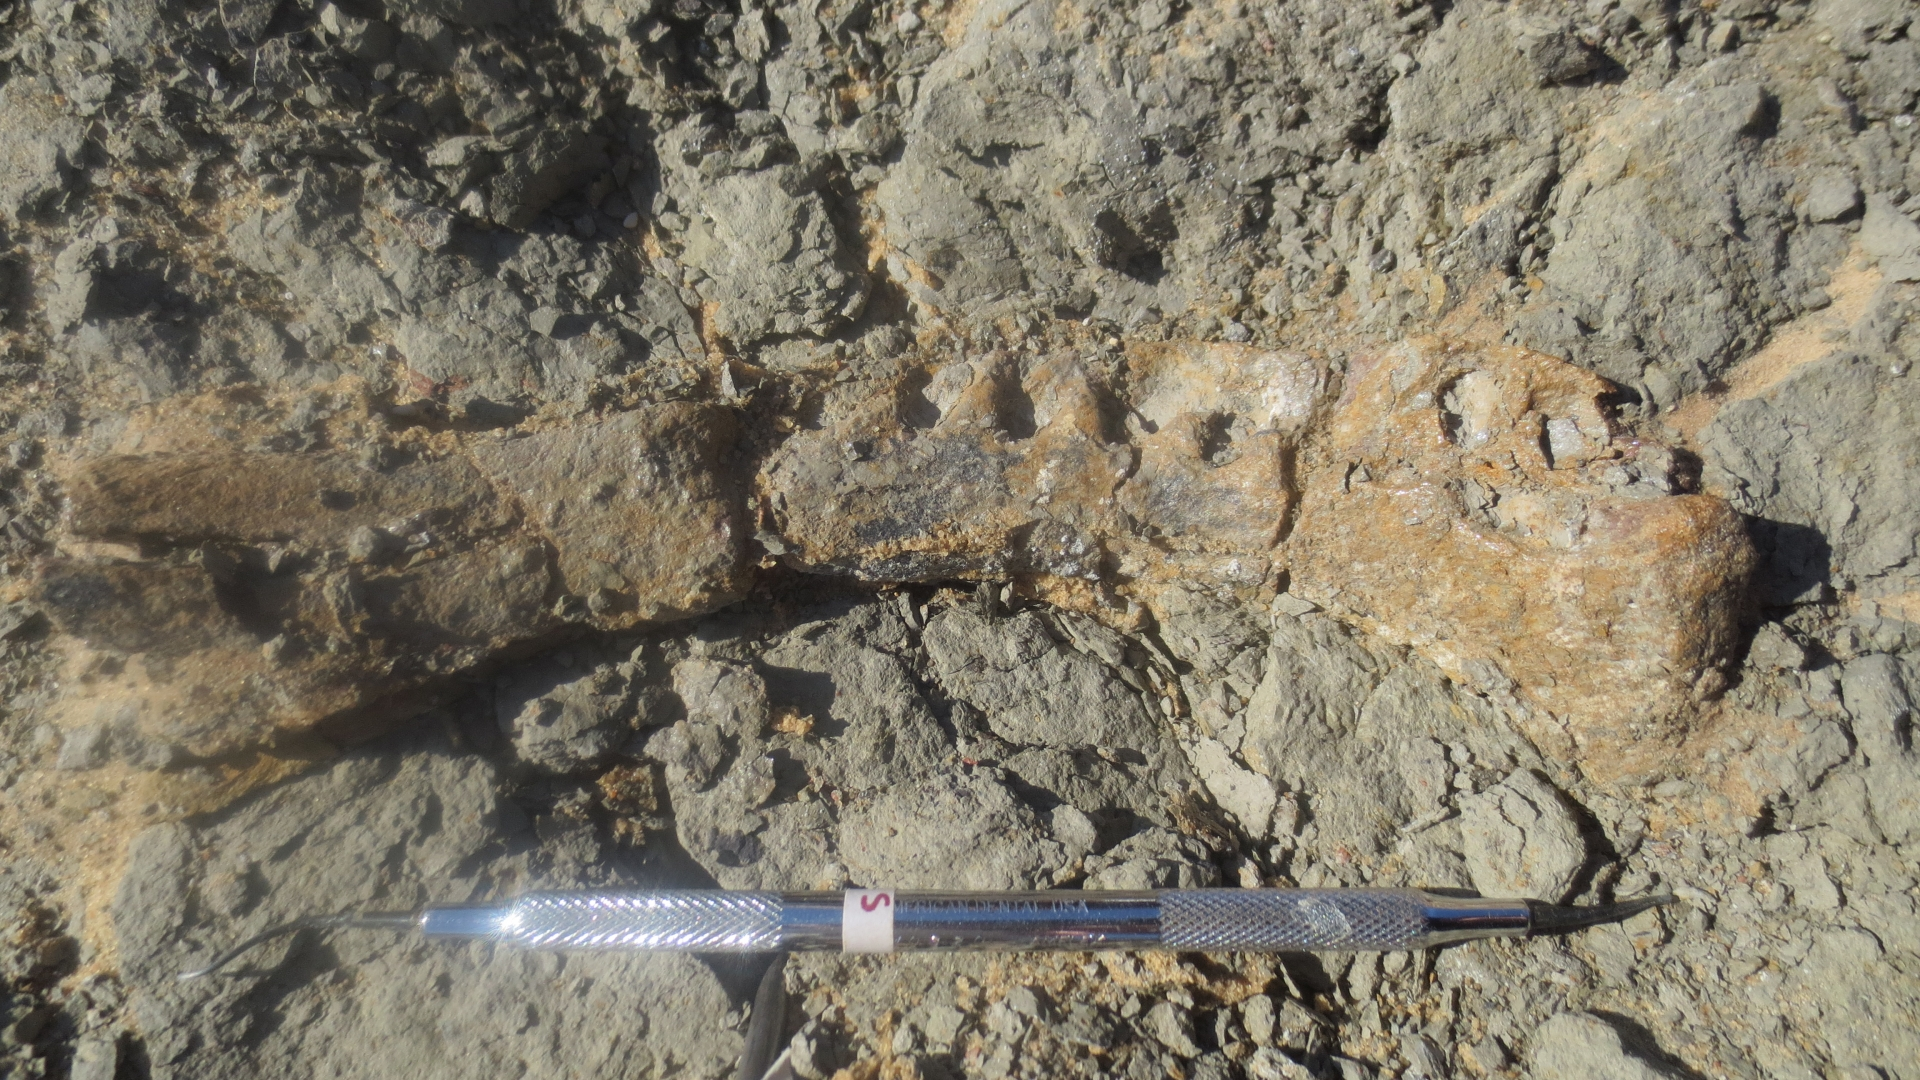 The lower jaw bone of the new dinosaur as it was found in rock of the Upper Cretaceous-aged (approximately 80 million-year-old) Quseir Formation of the Dakhla Oasis, Egypt. (Credit: Hesham Sallam/Mansoura University)